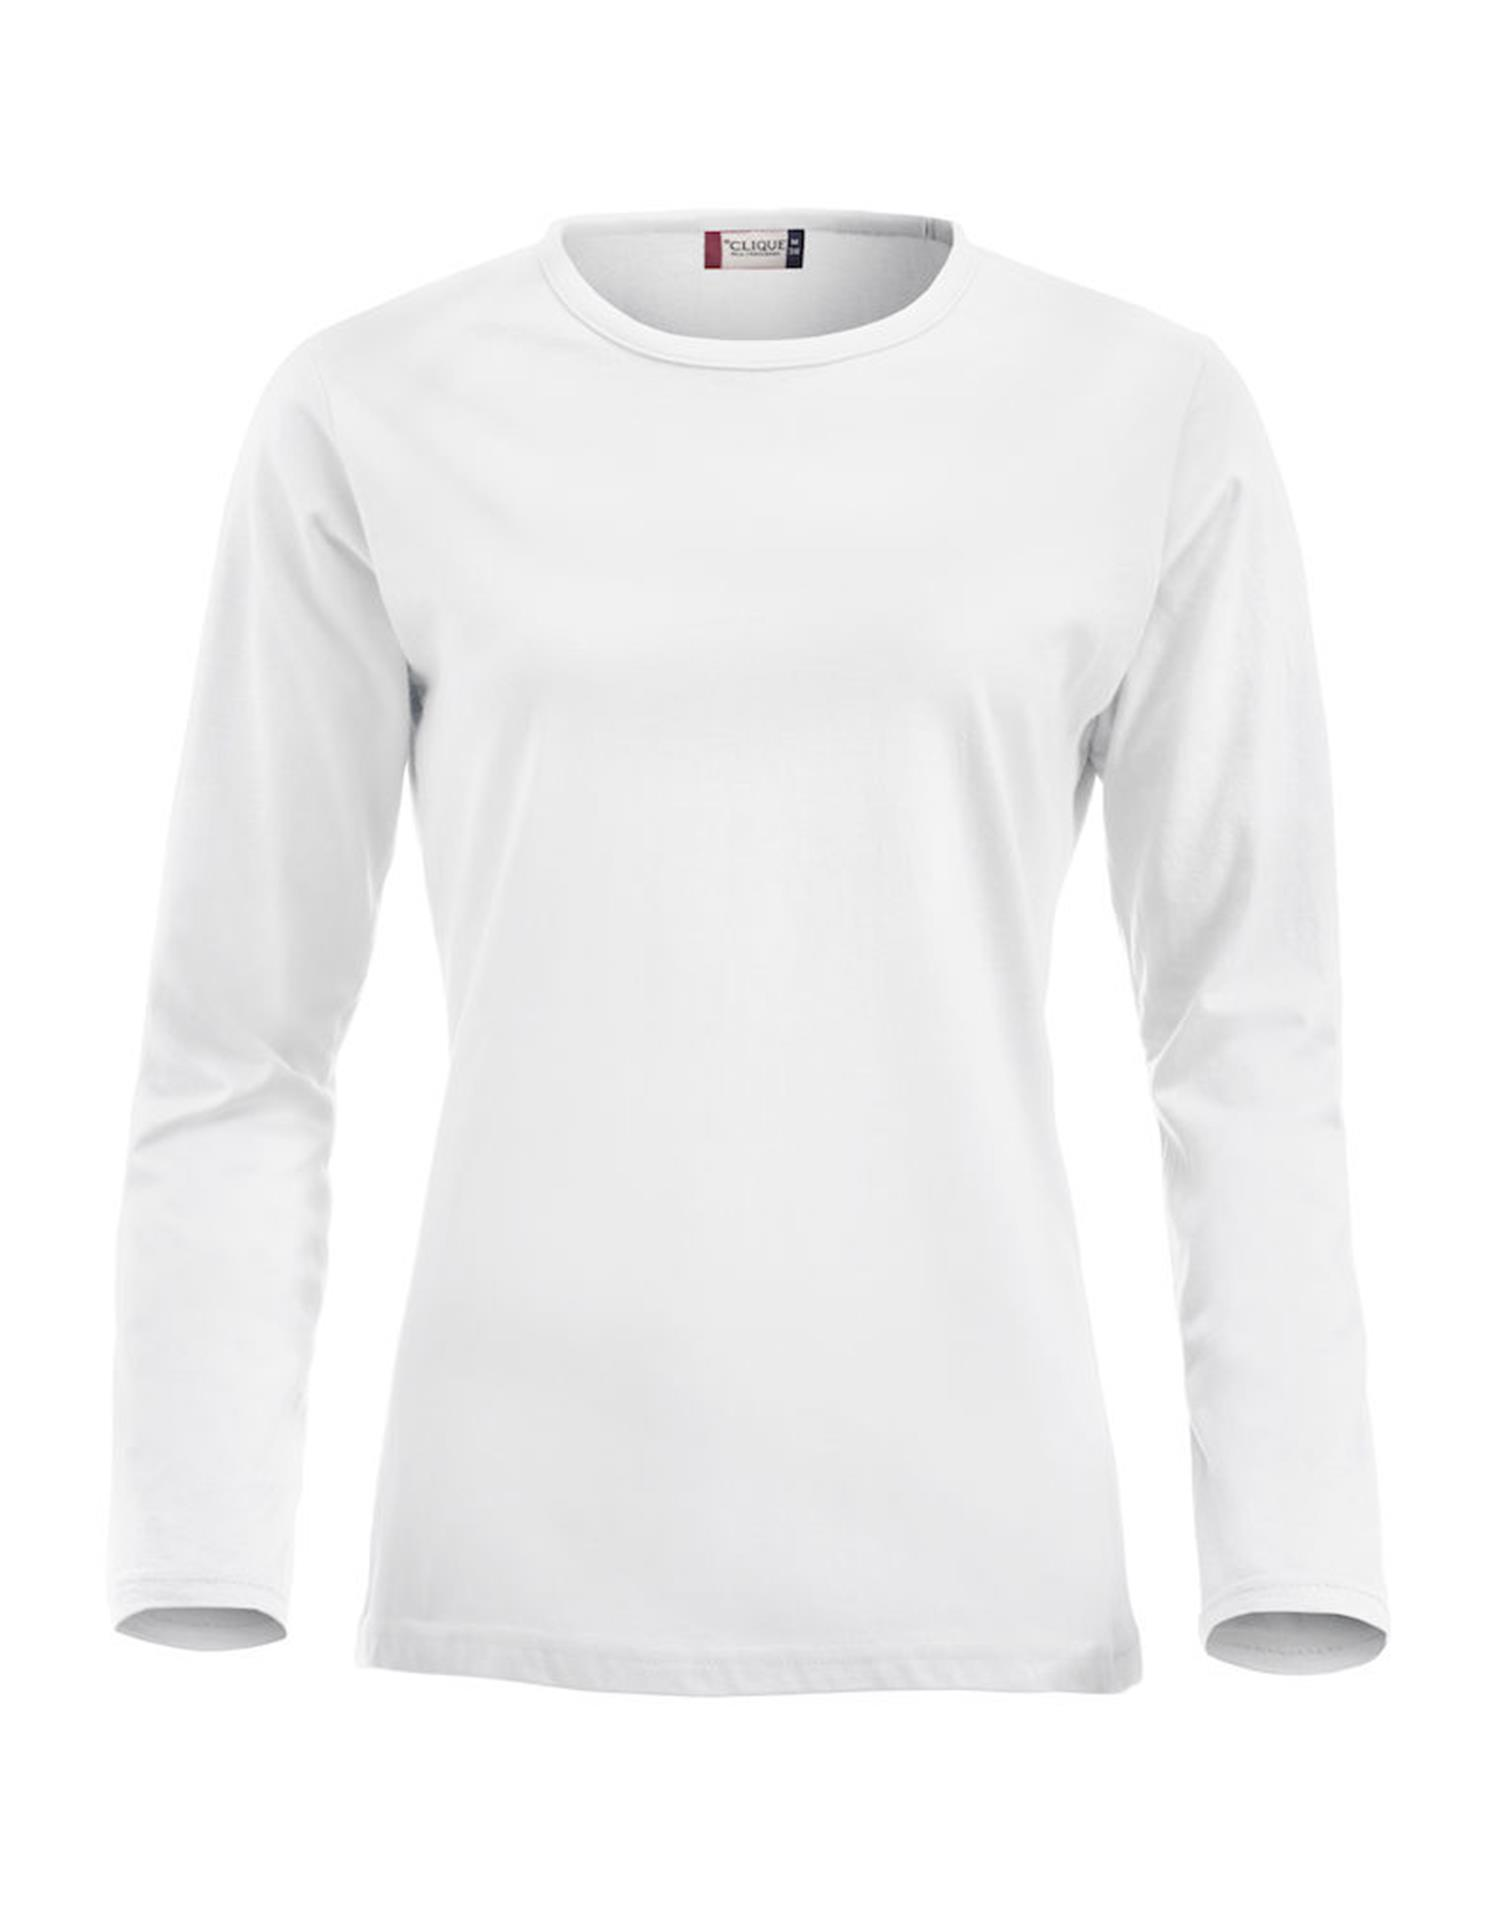 NewWave Fashion-T Ladies Long Sleeve (S - BIANCO)